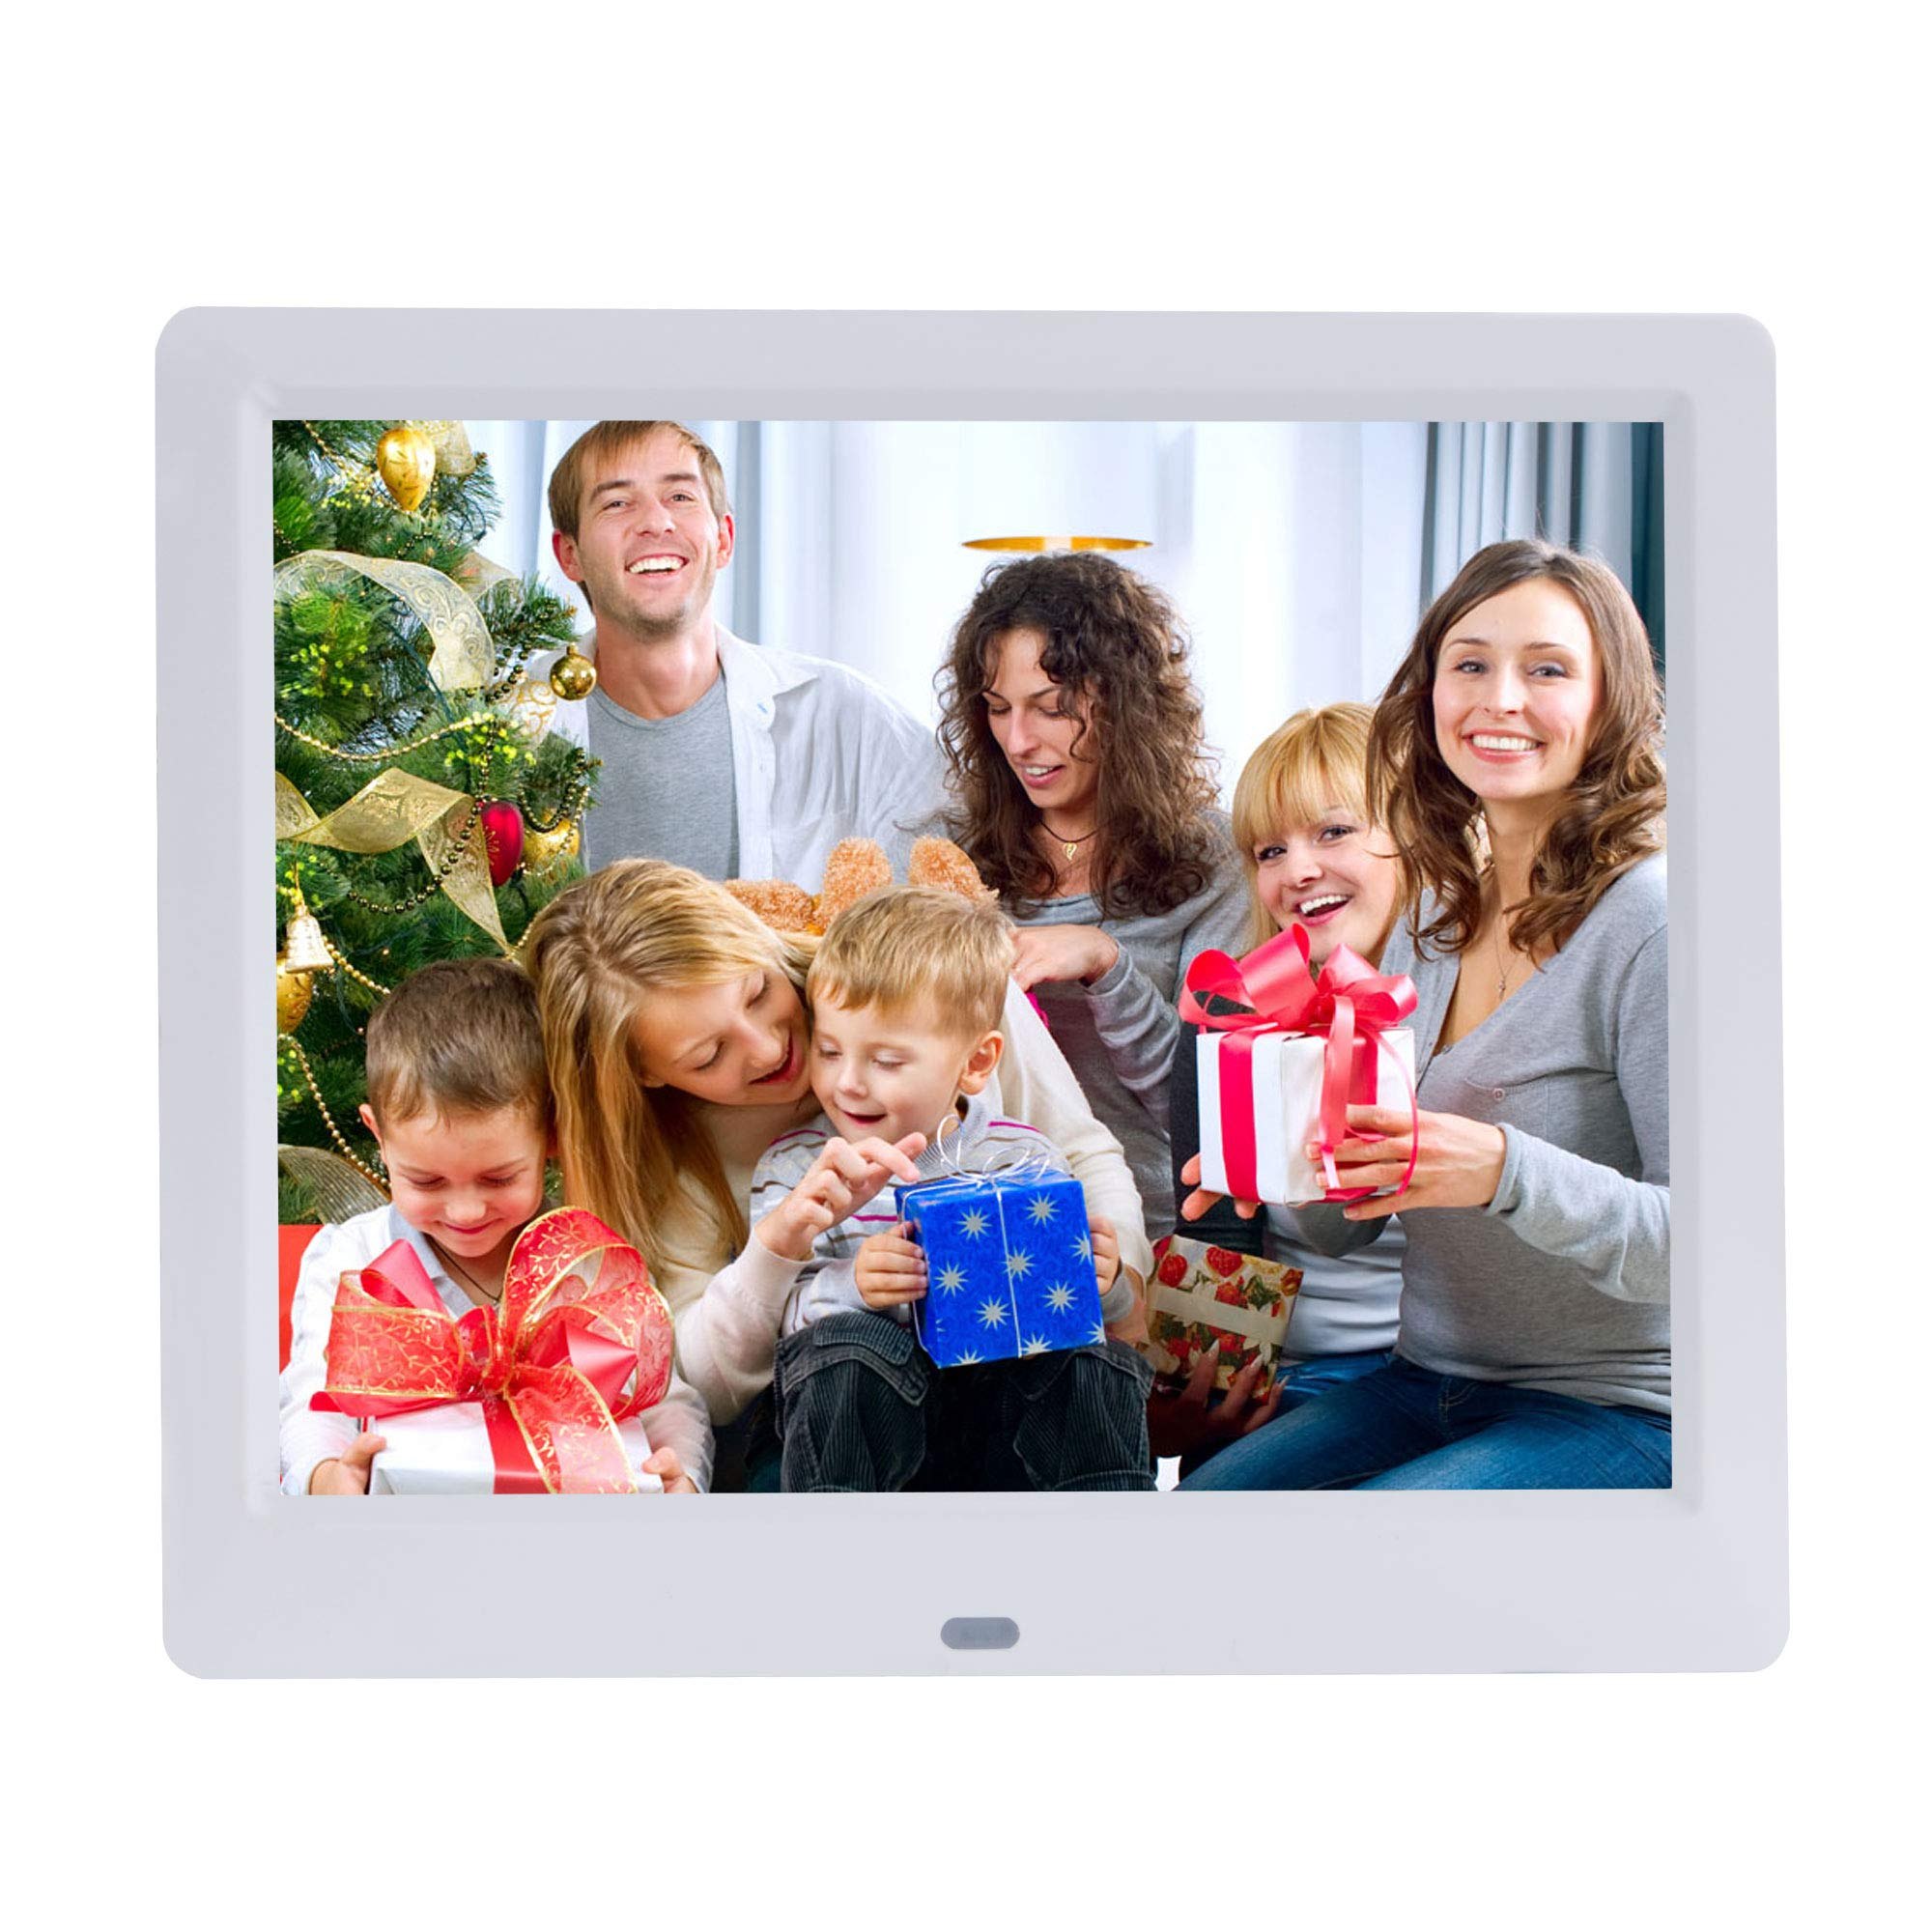 9 Inch IPS Digital Picture Frames Full Angle1024x768 High Resolution LCD Screen,Electronic Photo Frame Support Video and Pictures Player,Calendar Function and Remote Control